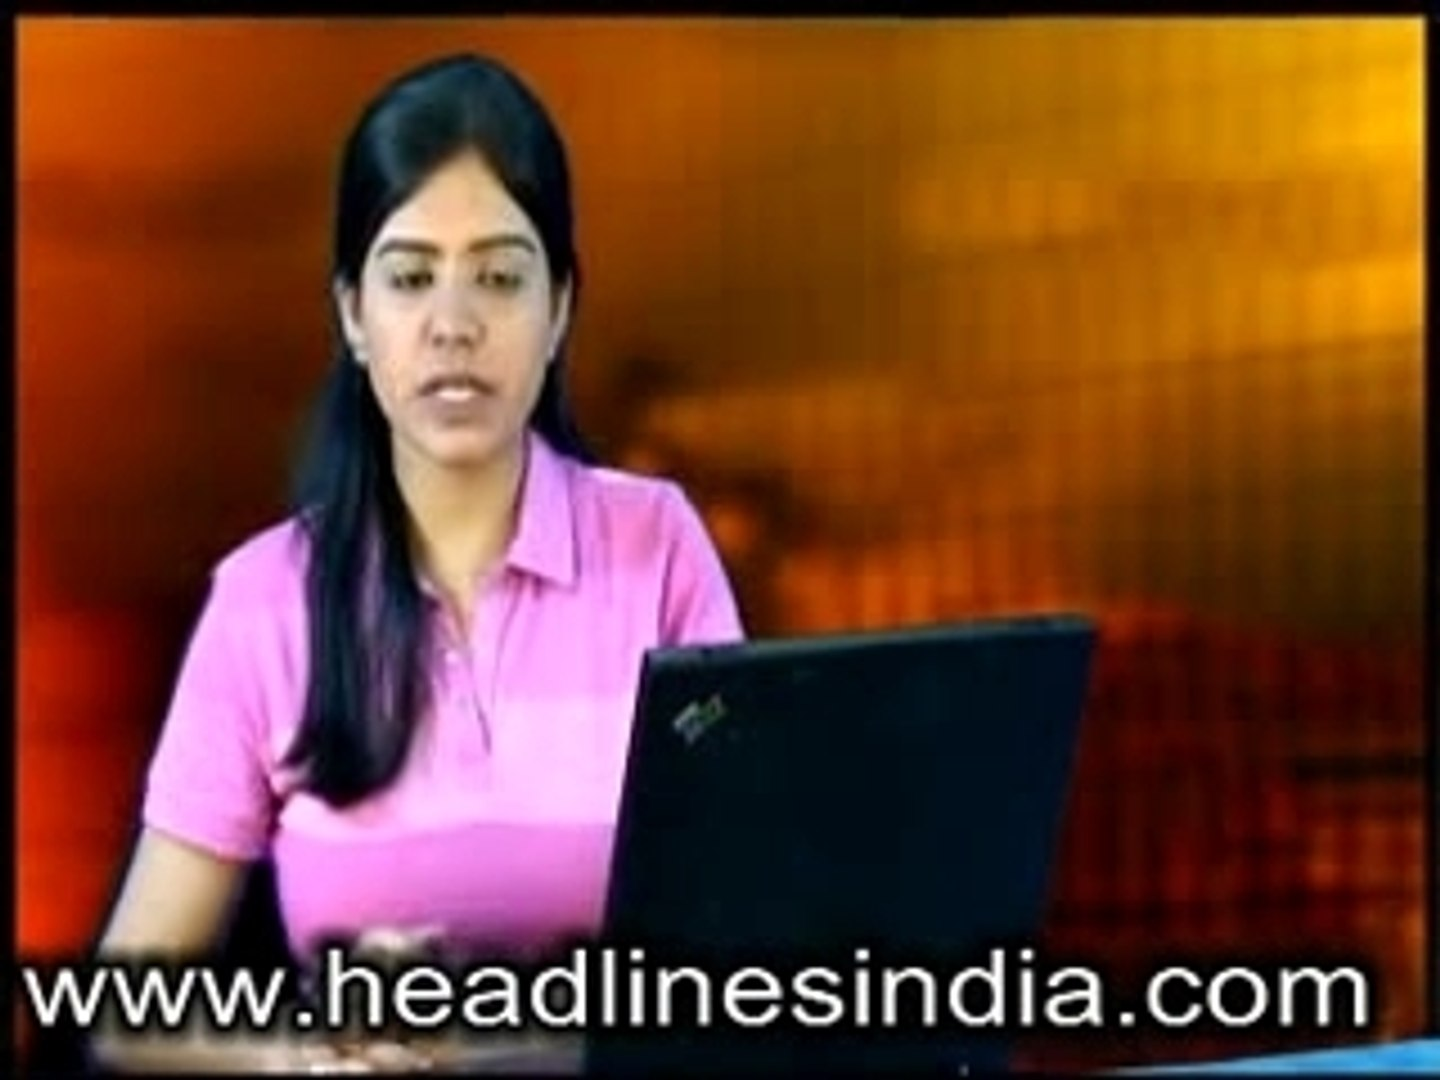 India Online News, India Gate drunken driving accident